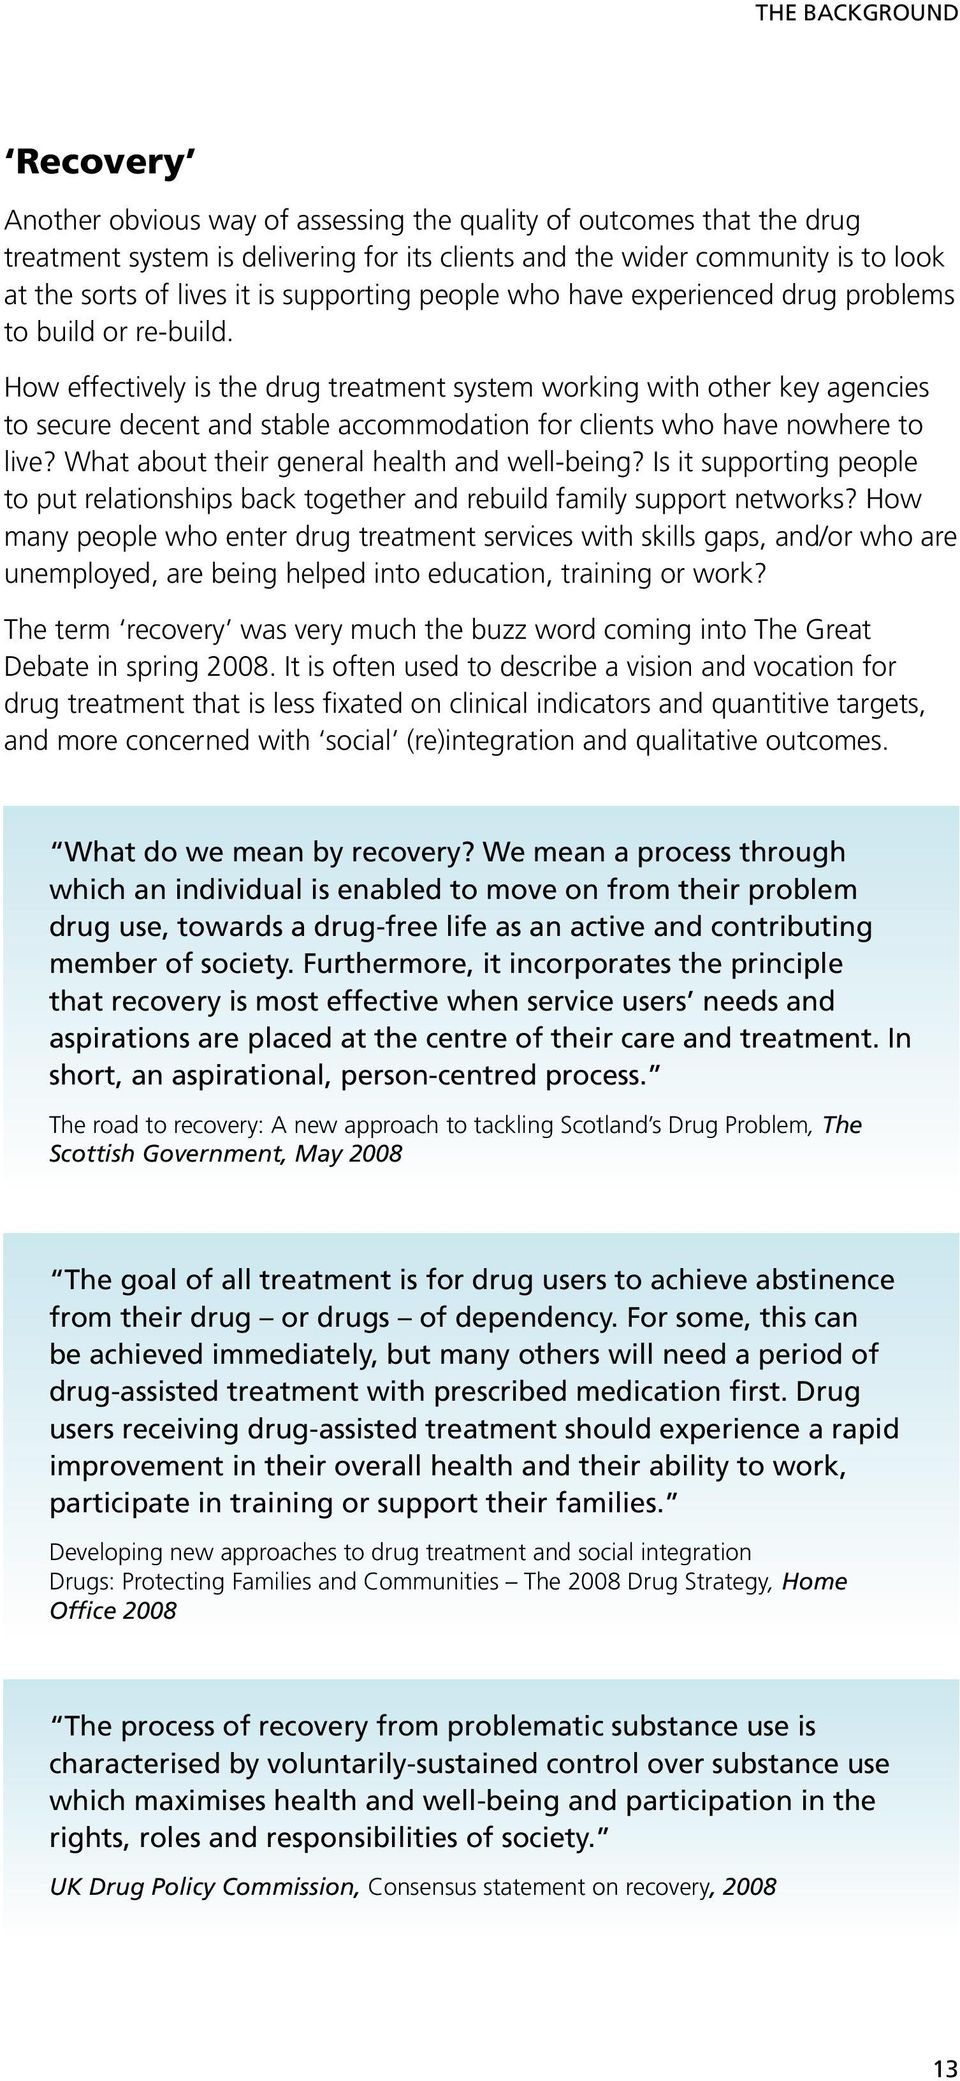 How effectively is the drug treatment system working with other key agencies to secure decent and stable accommodation for clients who have nowhere to live?